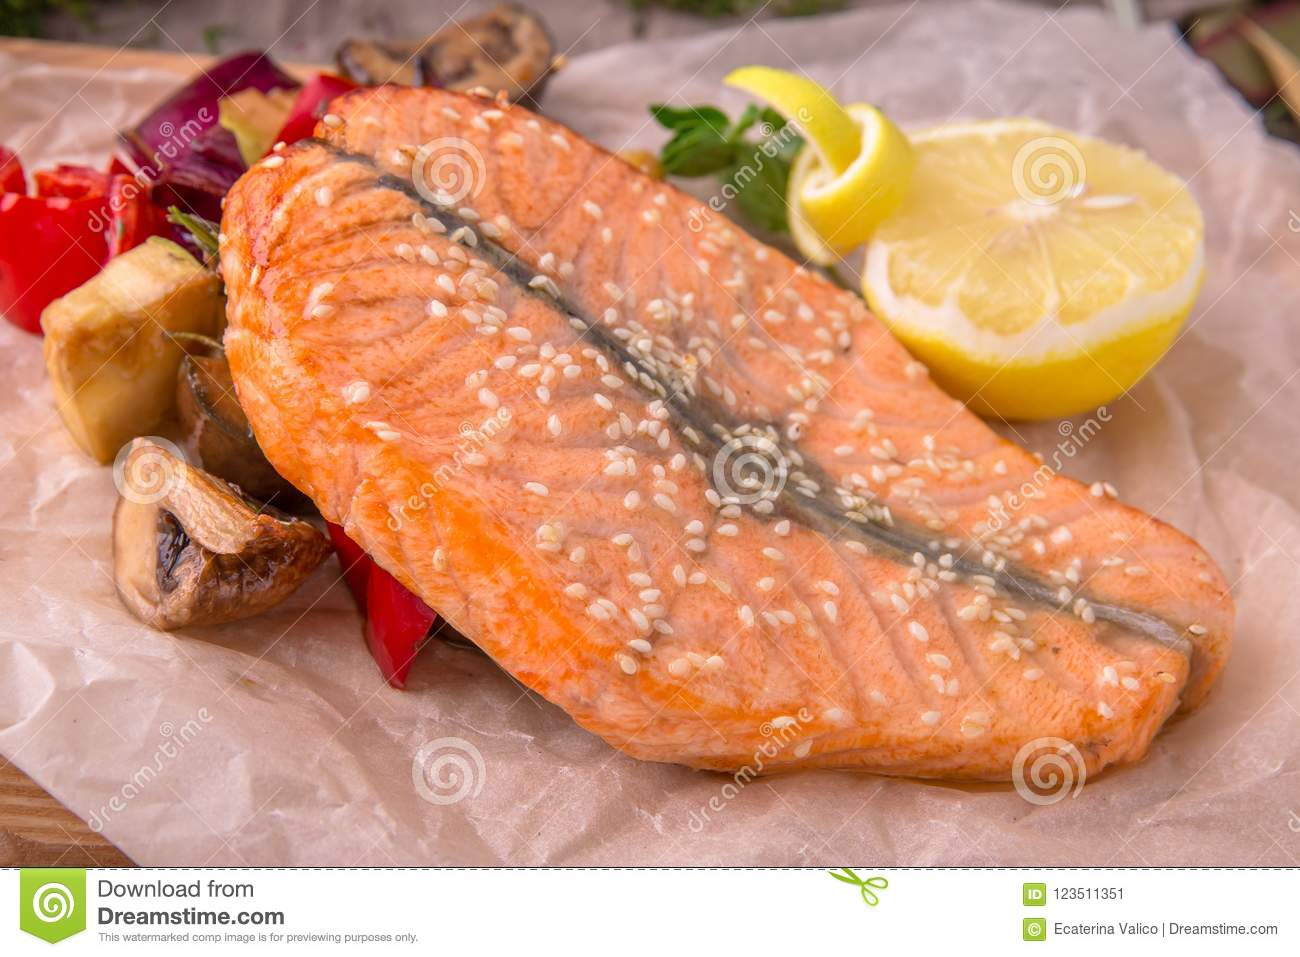 Grilled Salmon Steak With Vegetables On Wooden Table Beautiful